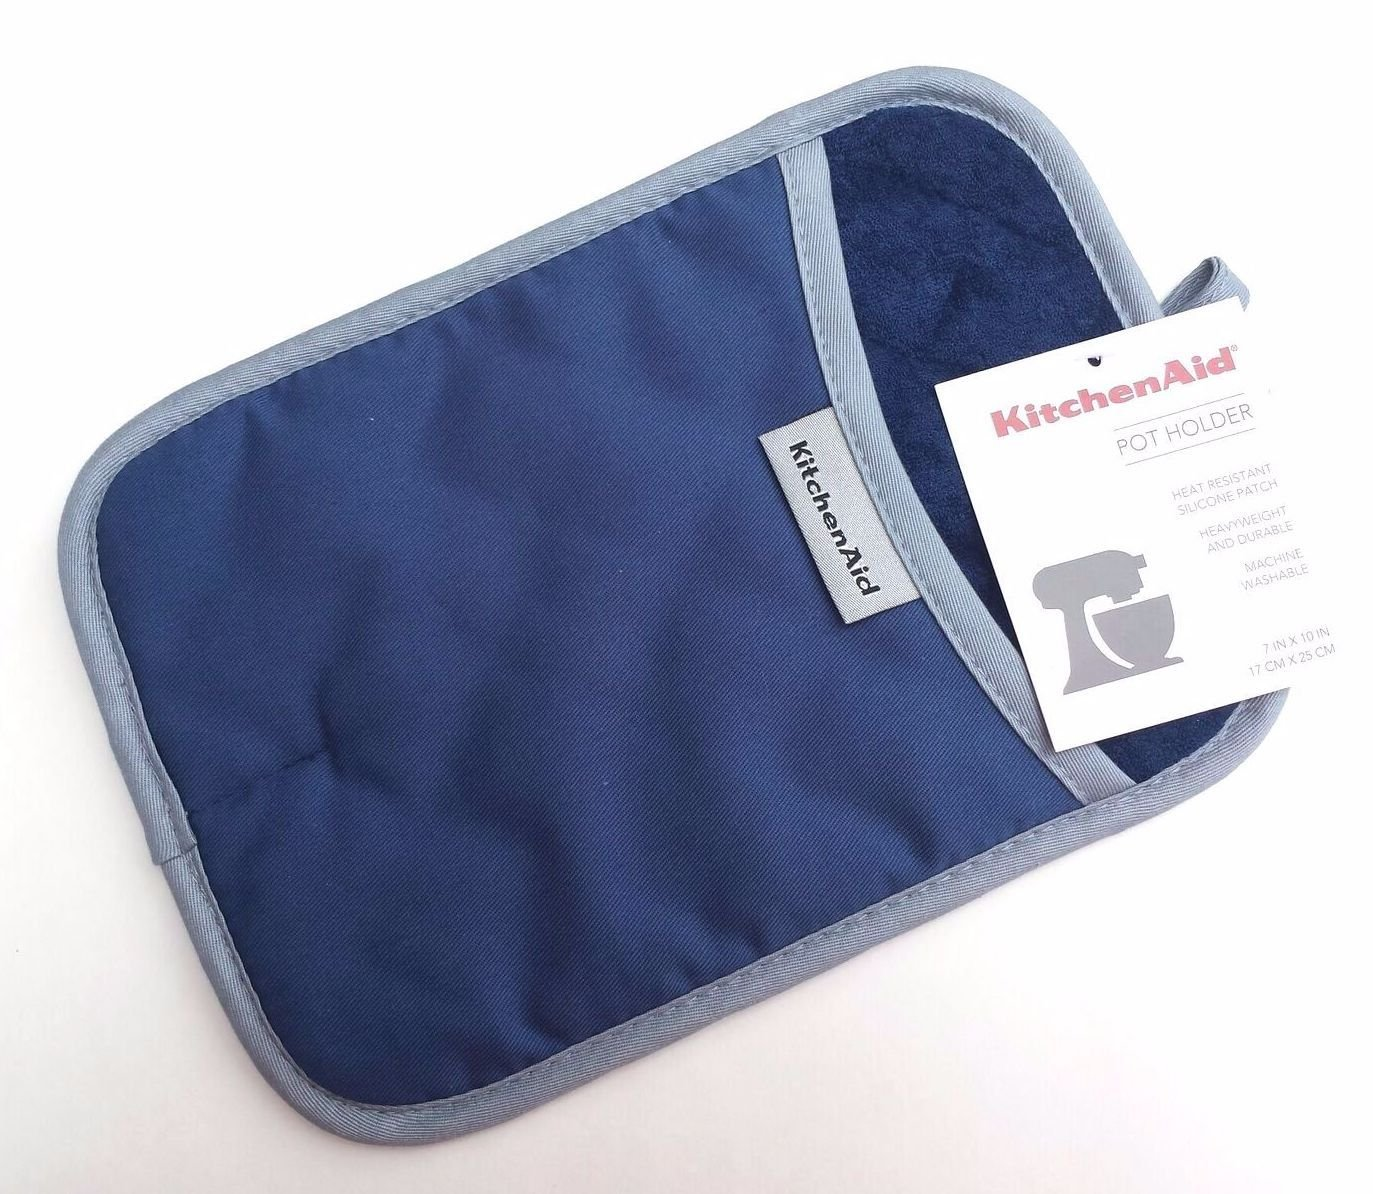 KitchenAid Cotton Pot Holder, Microfiber Lined, Printed Grid Silicone Grips (Blue Willow) by KitchenAid